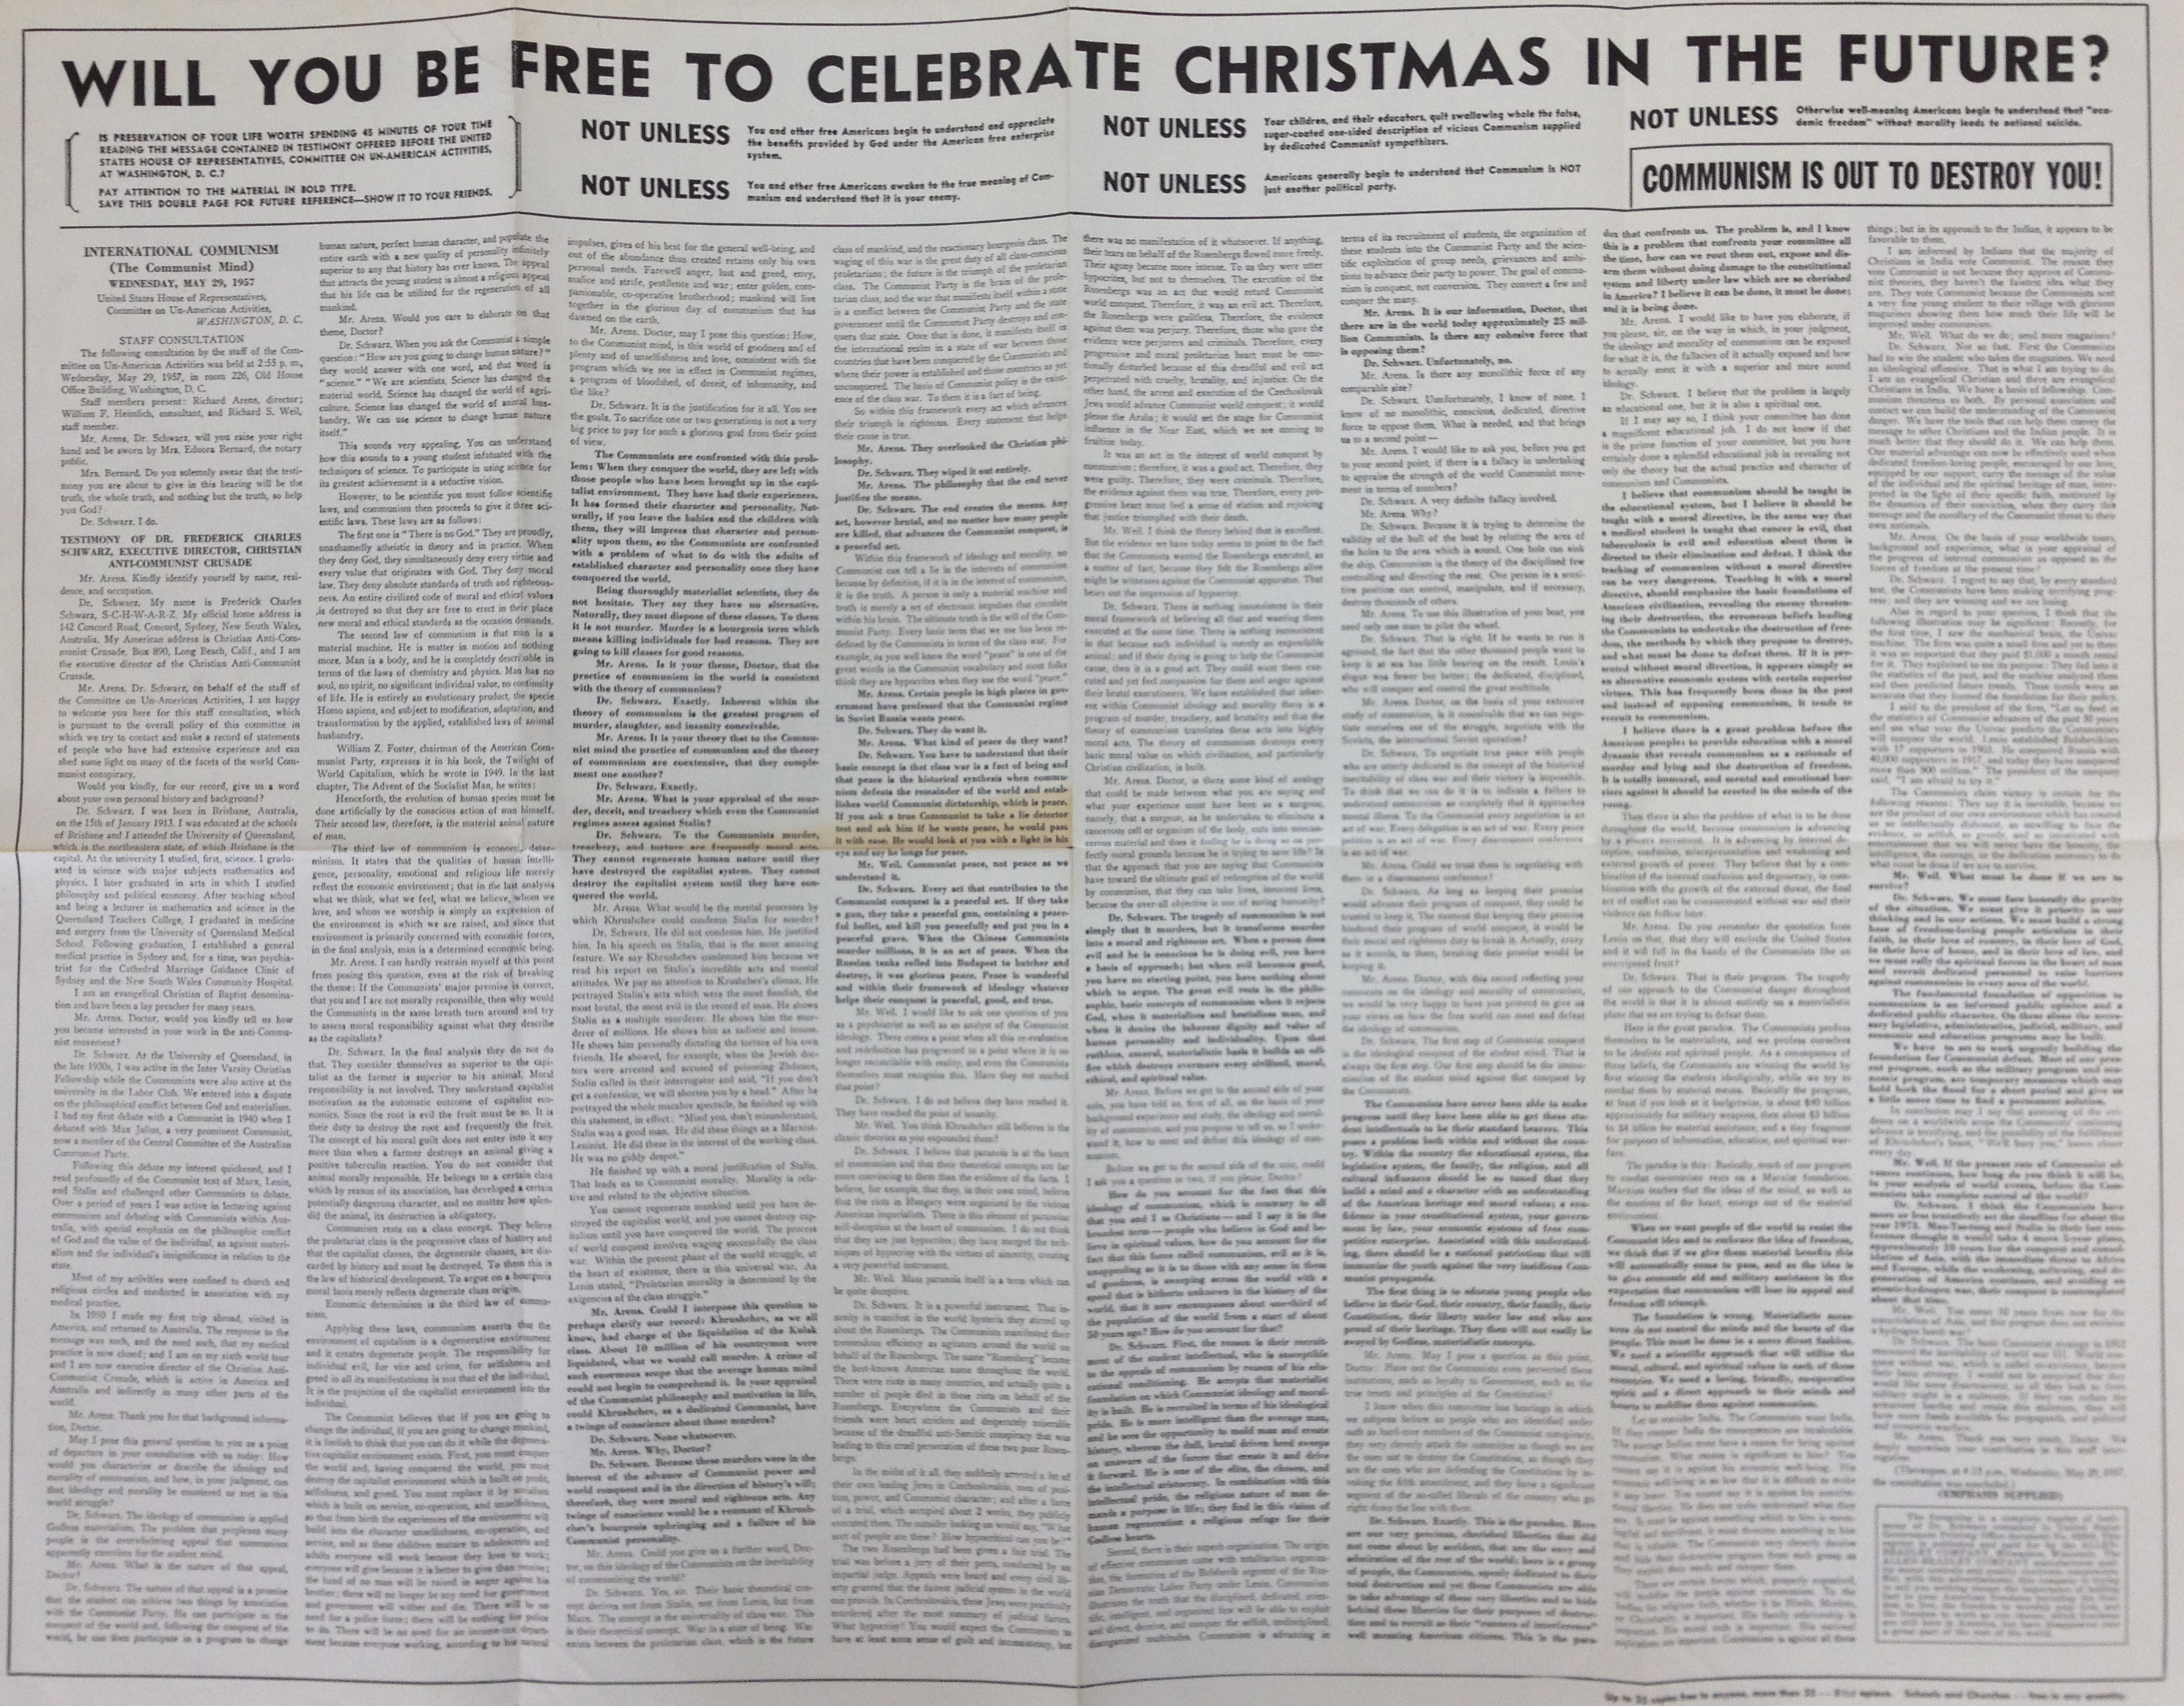 Will You Be Free To Celebrate Christmas?